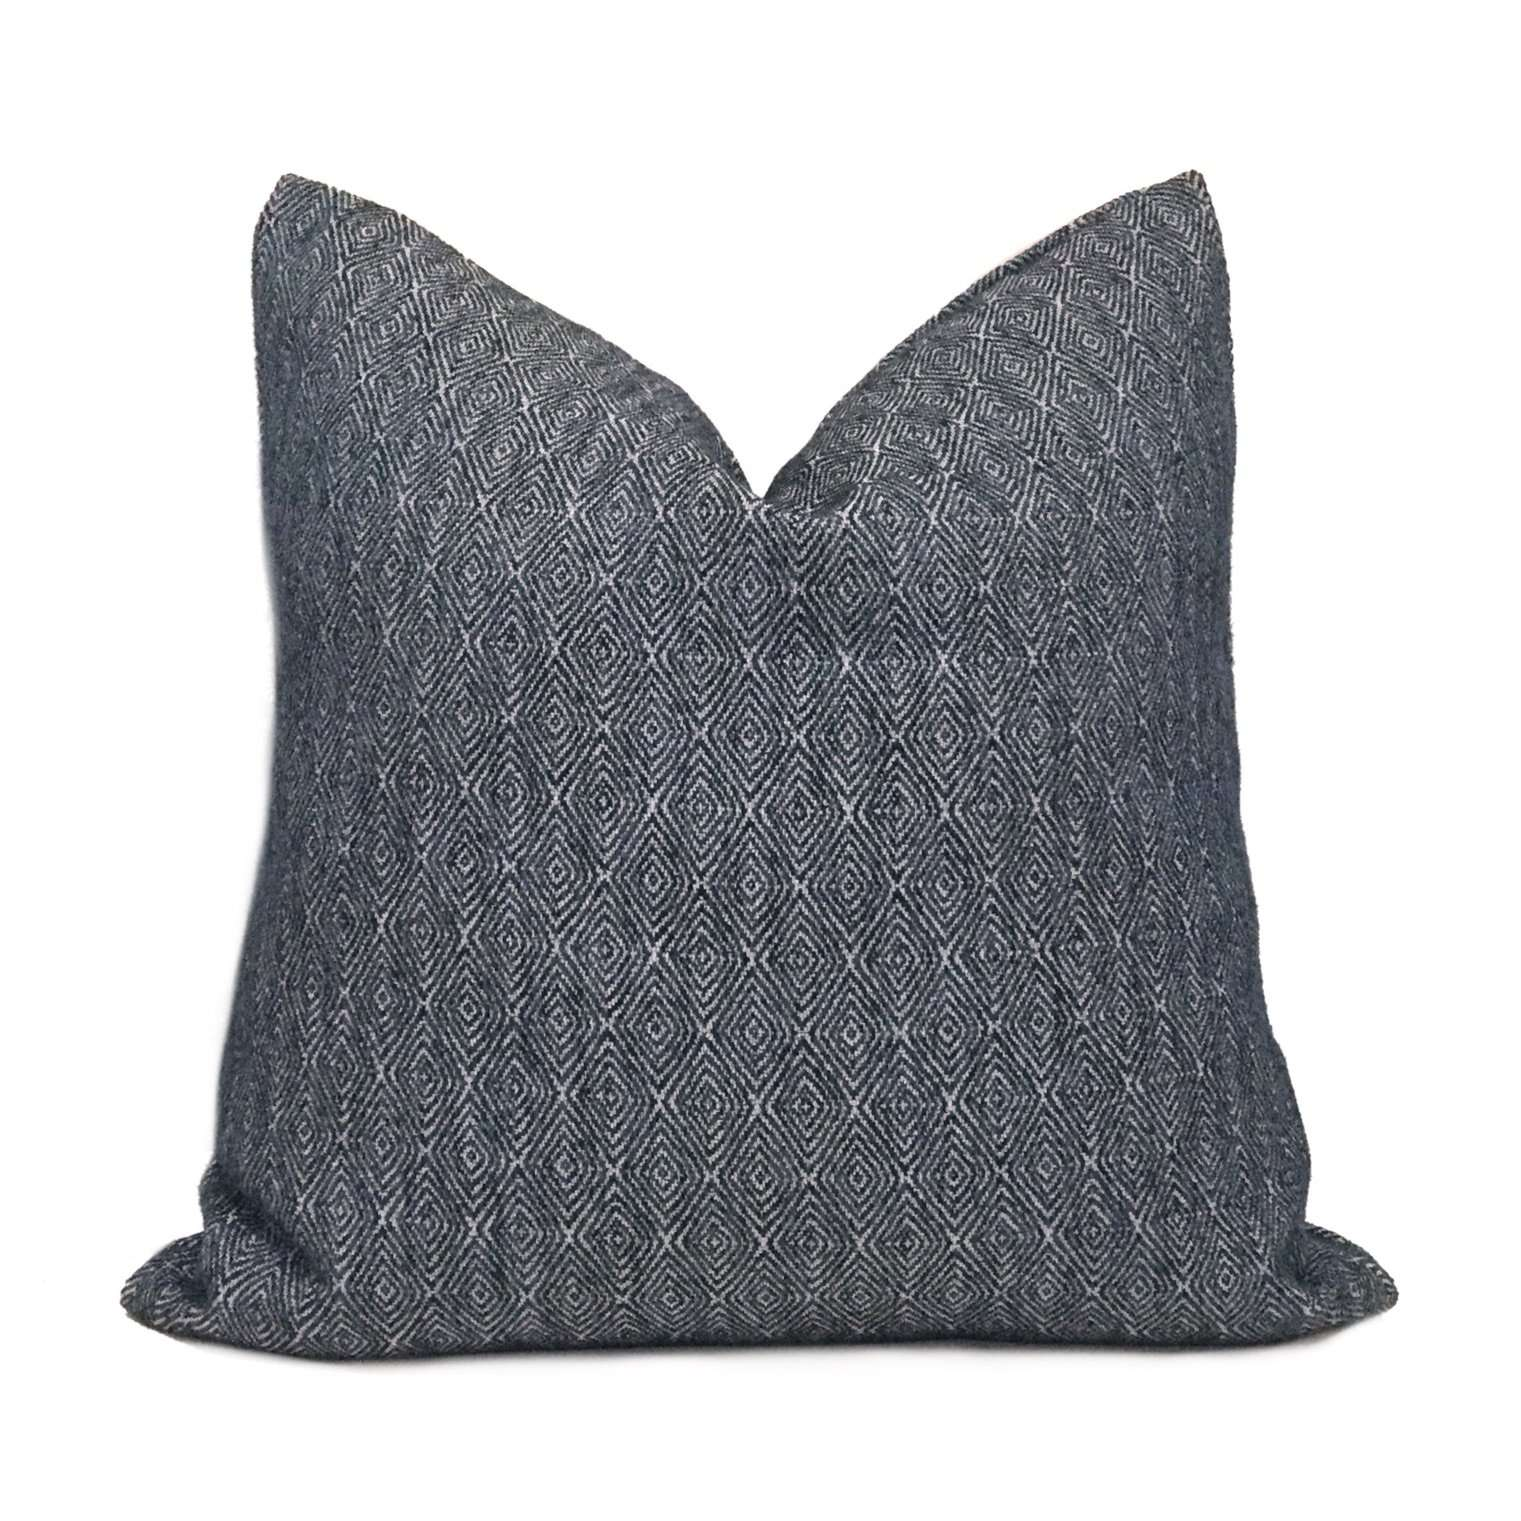 Medium Blue Diamond Tile Geometric Pillow Cover Cushion Pillow Case Euro Sham 16x16 18x18 20x20 22x22 24x24 26x26 28x28 Lumbar Pillow 12x18 12x20 12x24 14x20 16x26 by Aloriam